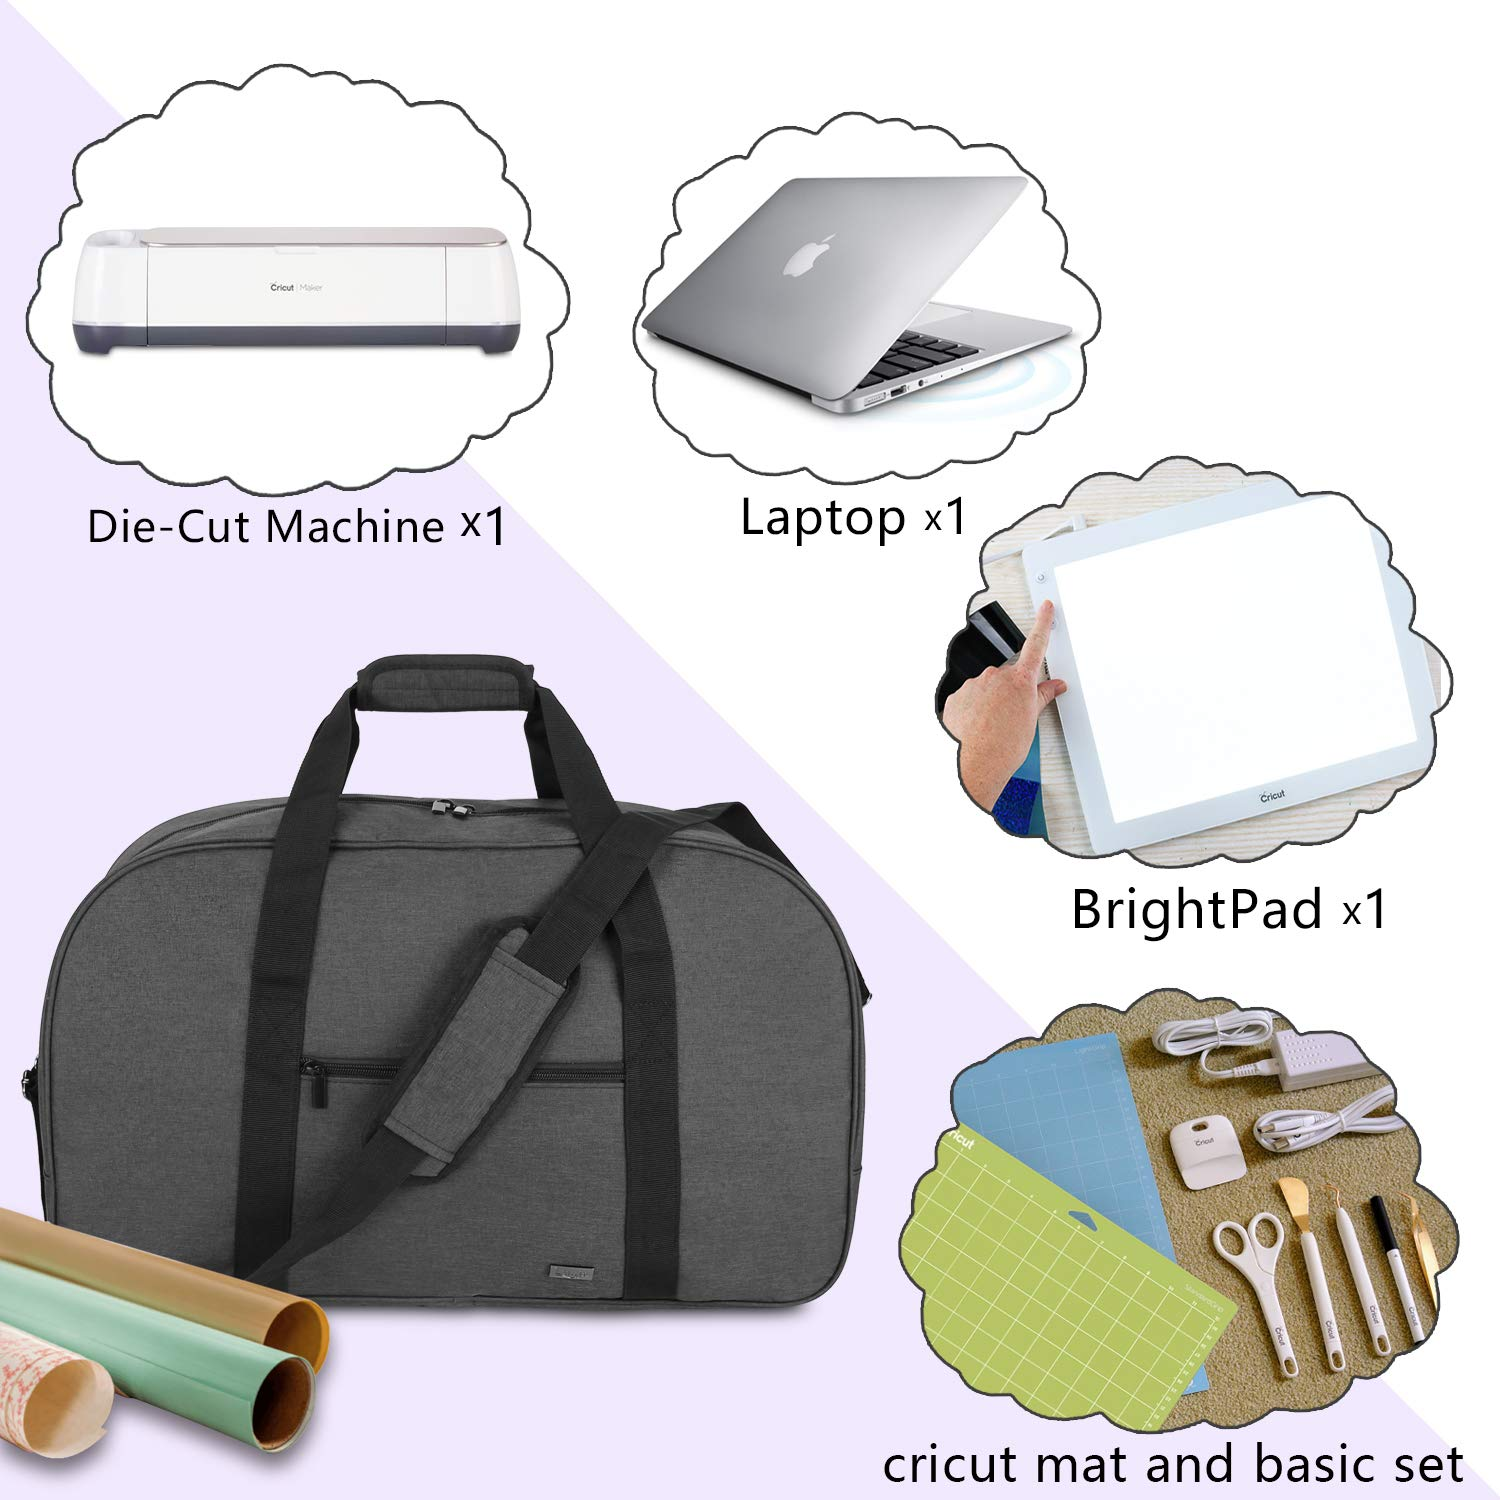 Black Bag Only Carrying Bag Compatible with Cricut Explore Air and Supplies Luxja Foldable Bag Compatible with Cricut Explore Air and Maker